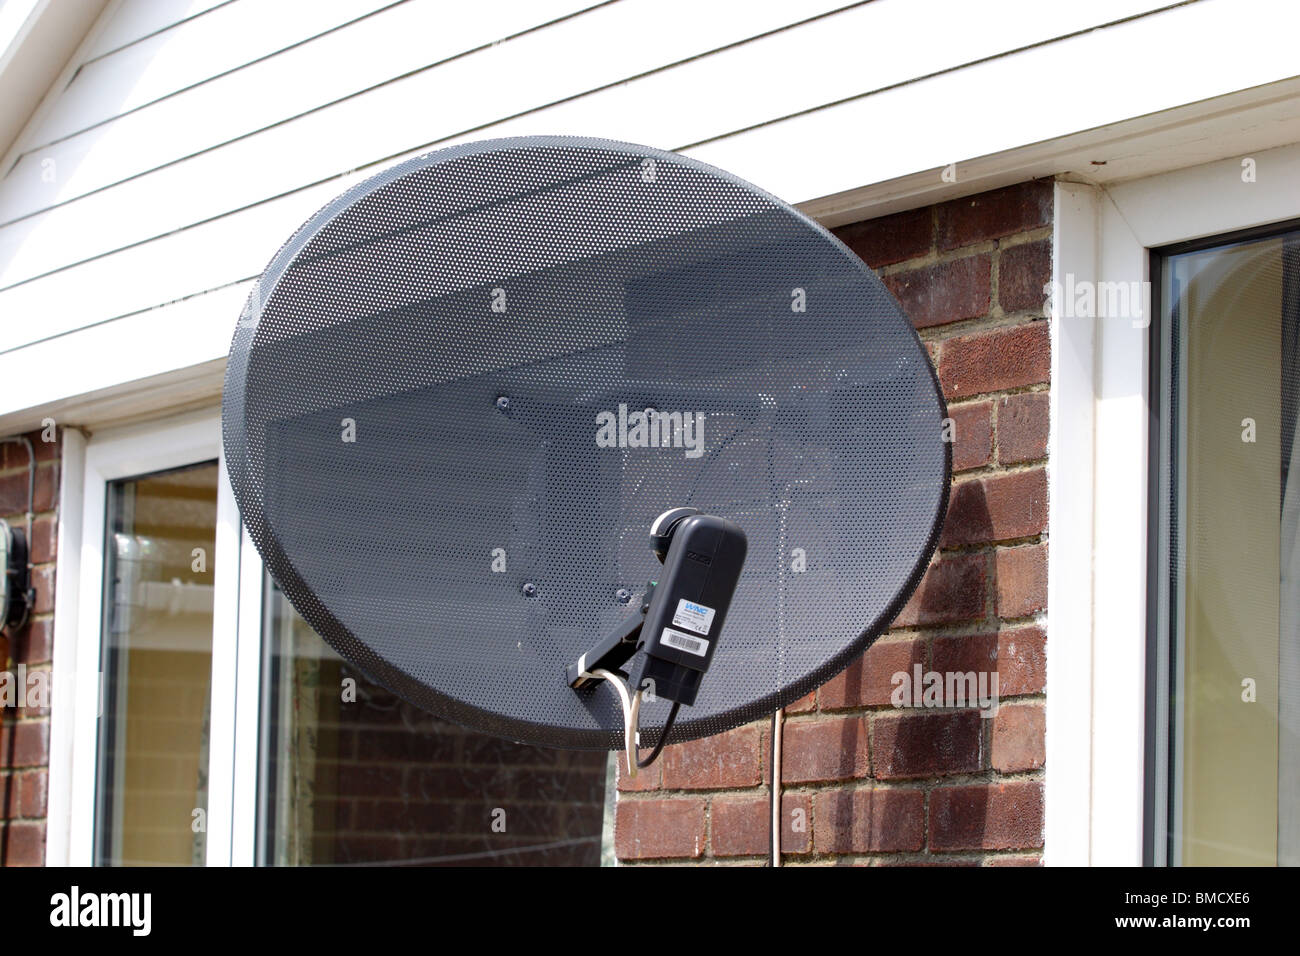 Sky satellite dish - Stock Image